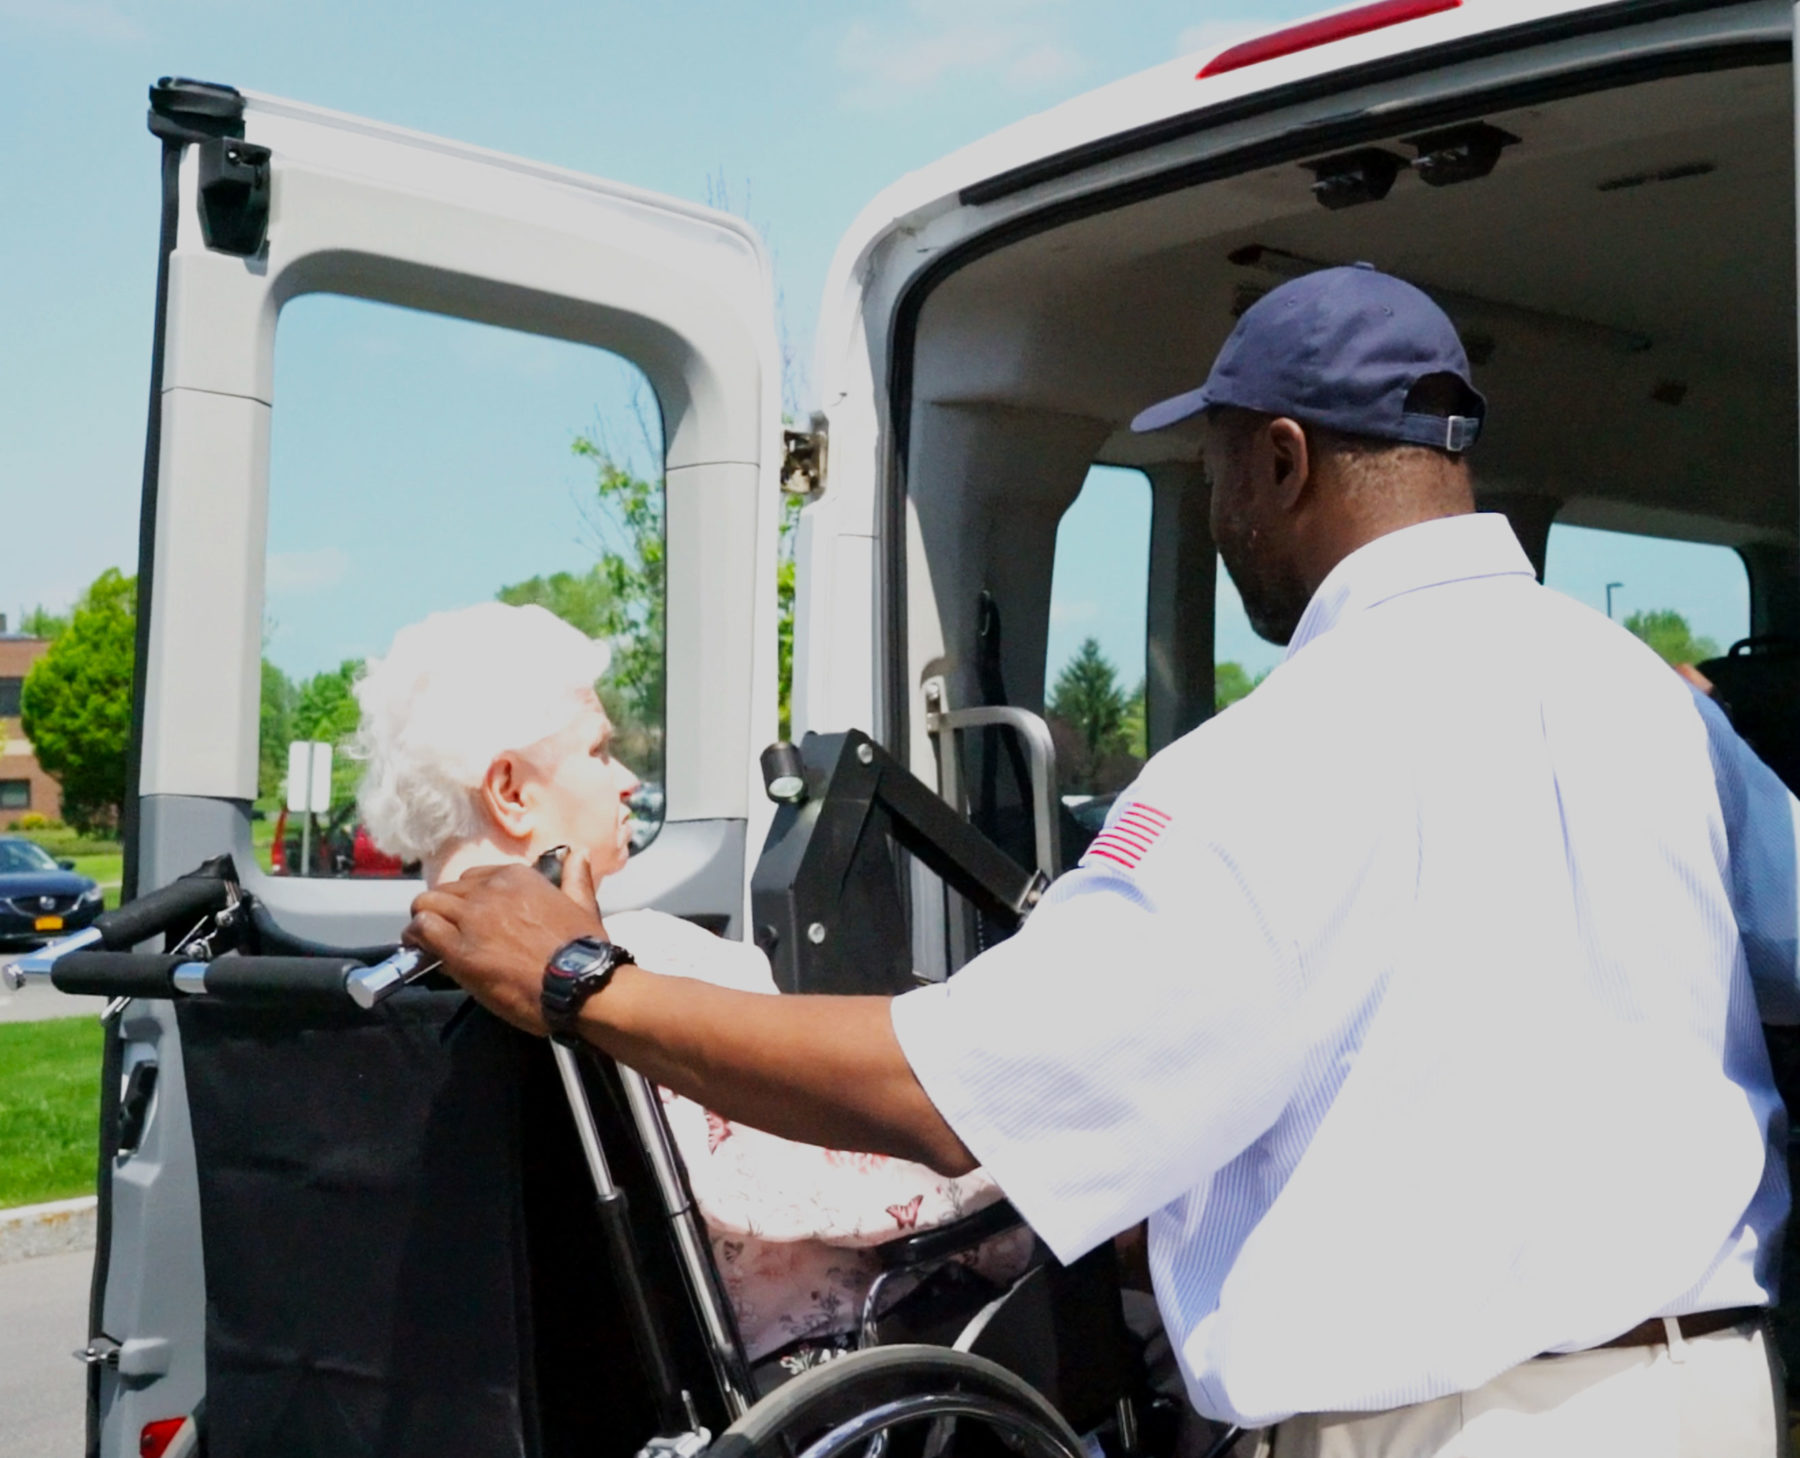 http://safe%20wheelchair%20and%20stretcher%20transport